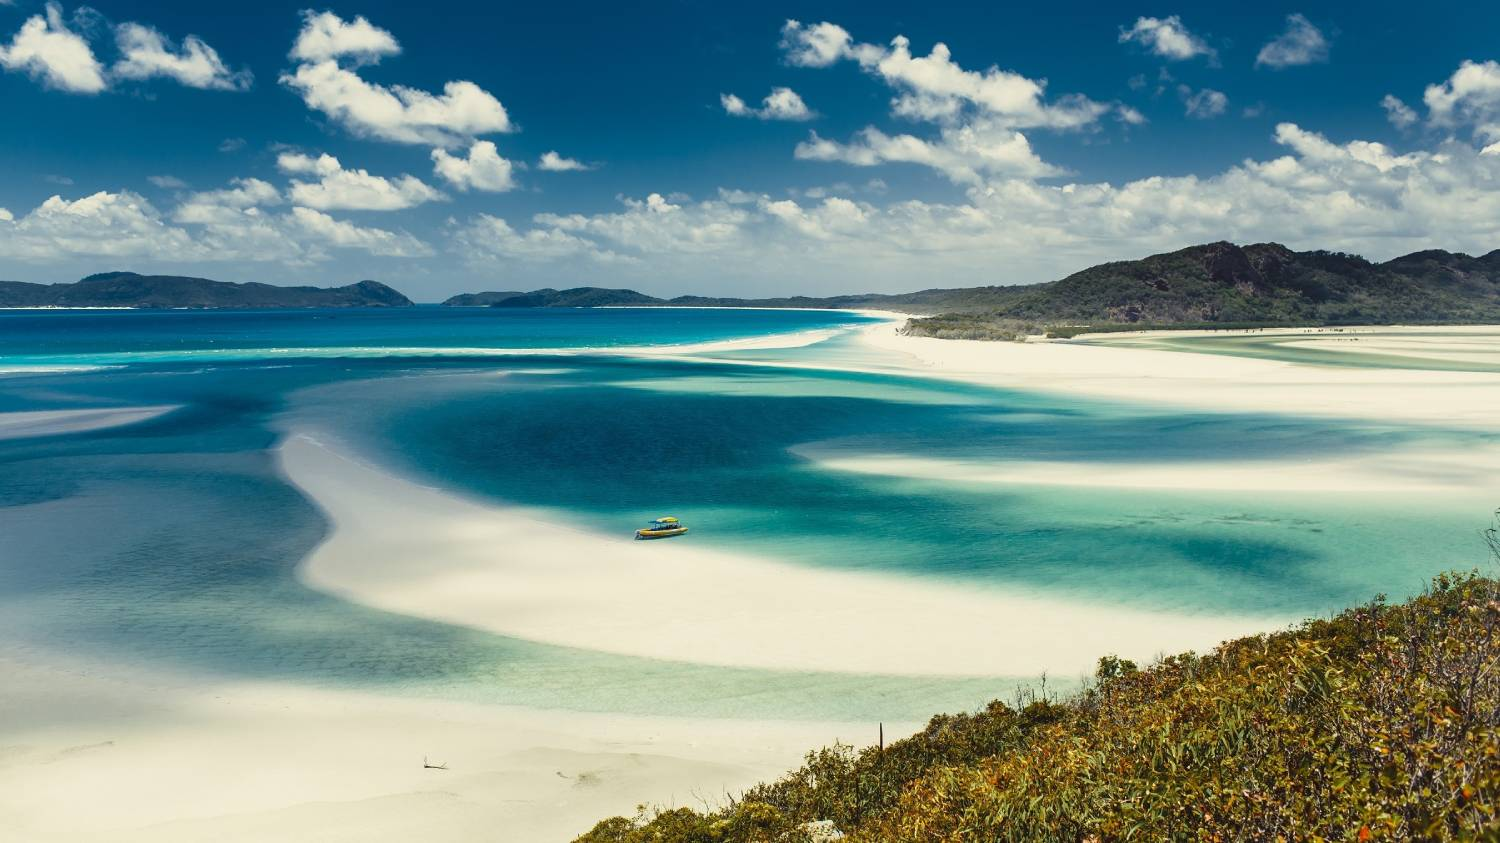 Whitsunday Islands - The Best Places To Visit In Australia